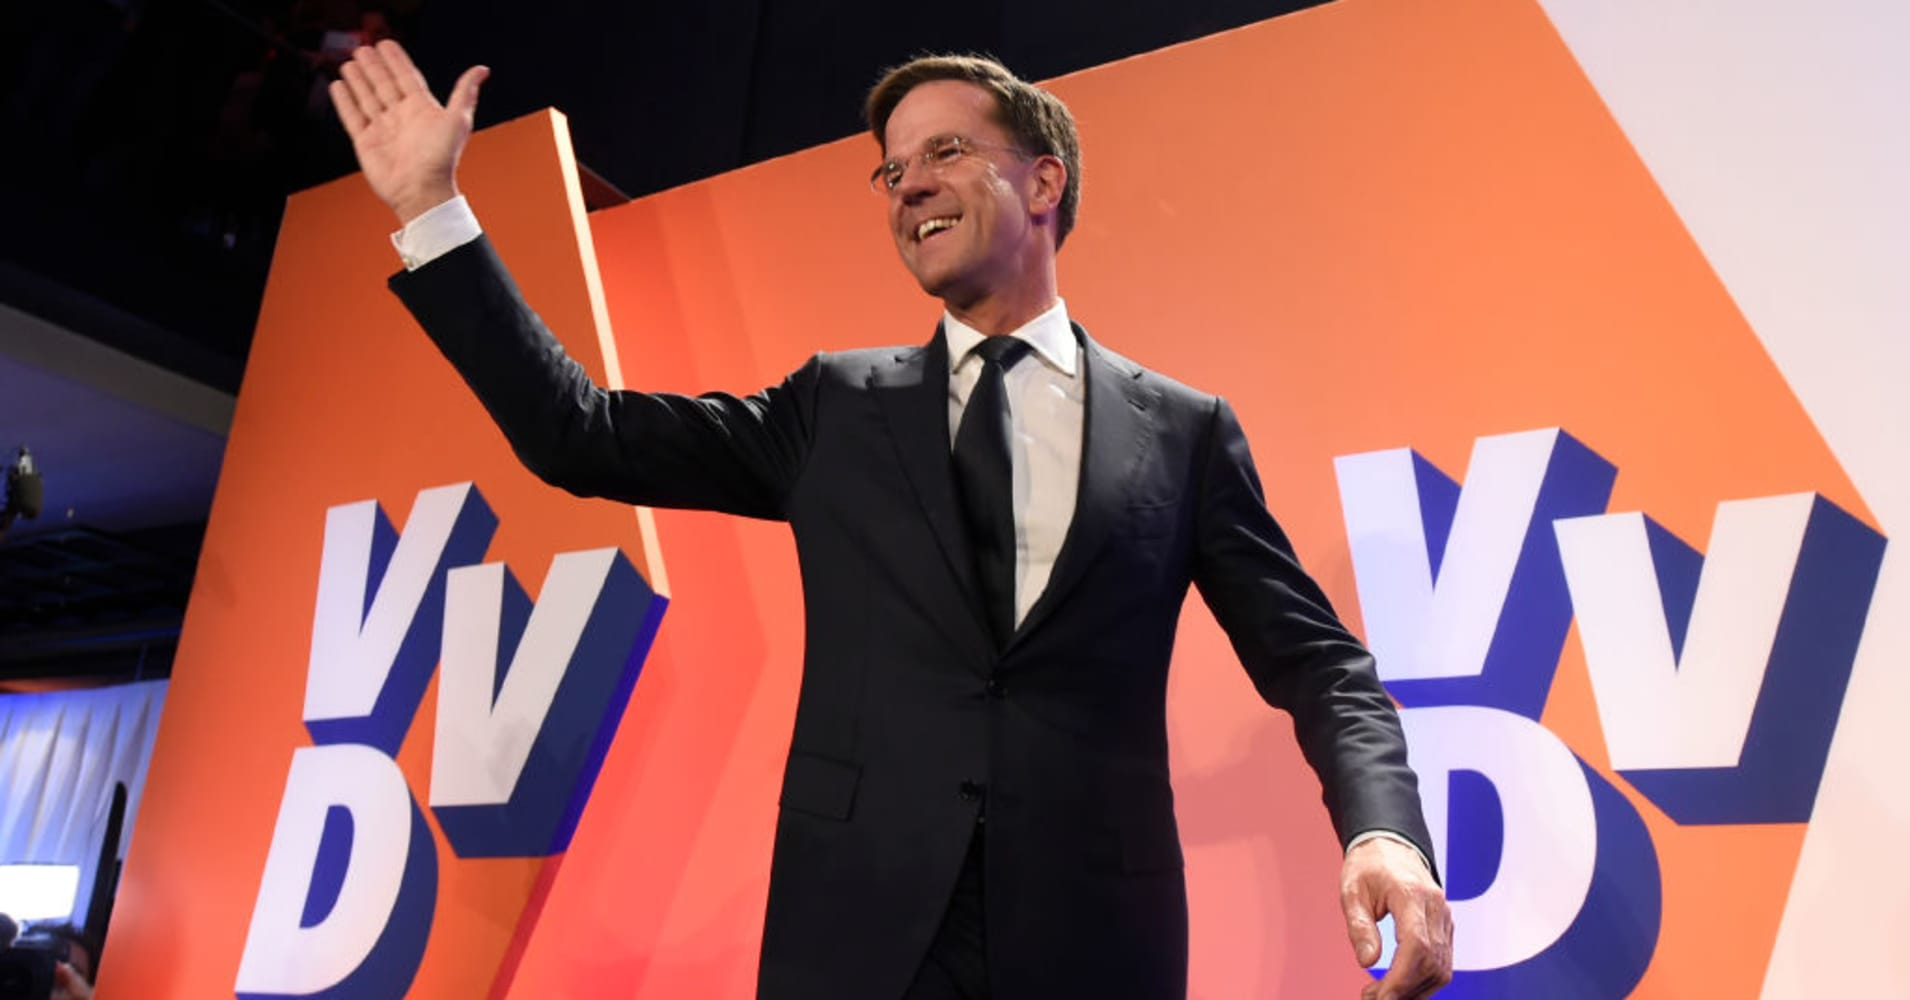 Top 10 takeaways from the Dutch elections